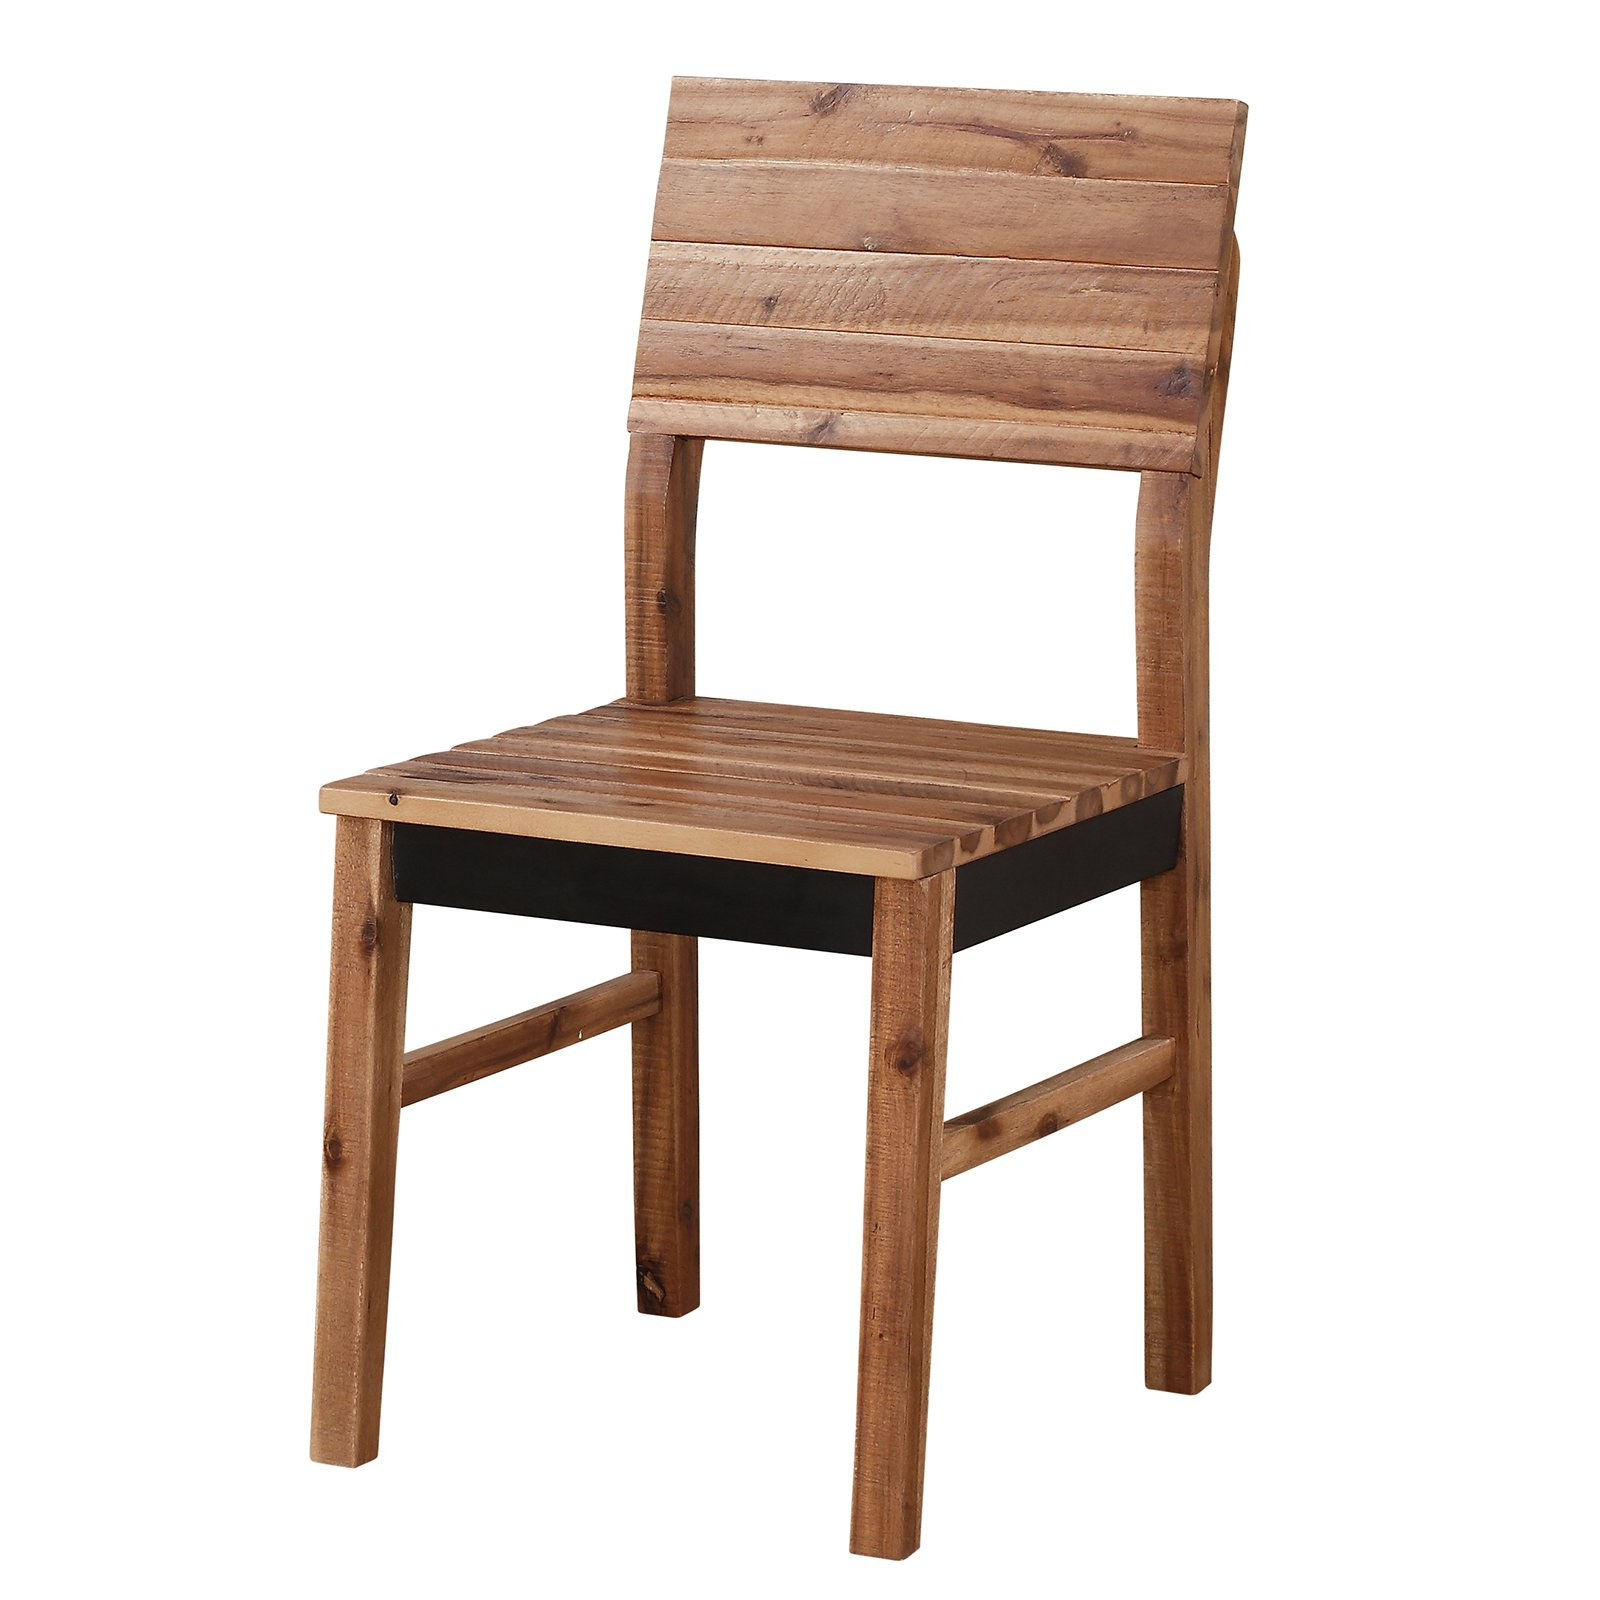 Modus Weston Solid Wood Dining Side Chair - Natural Acacia